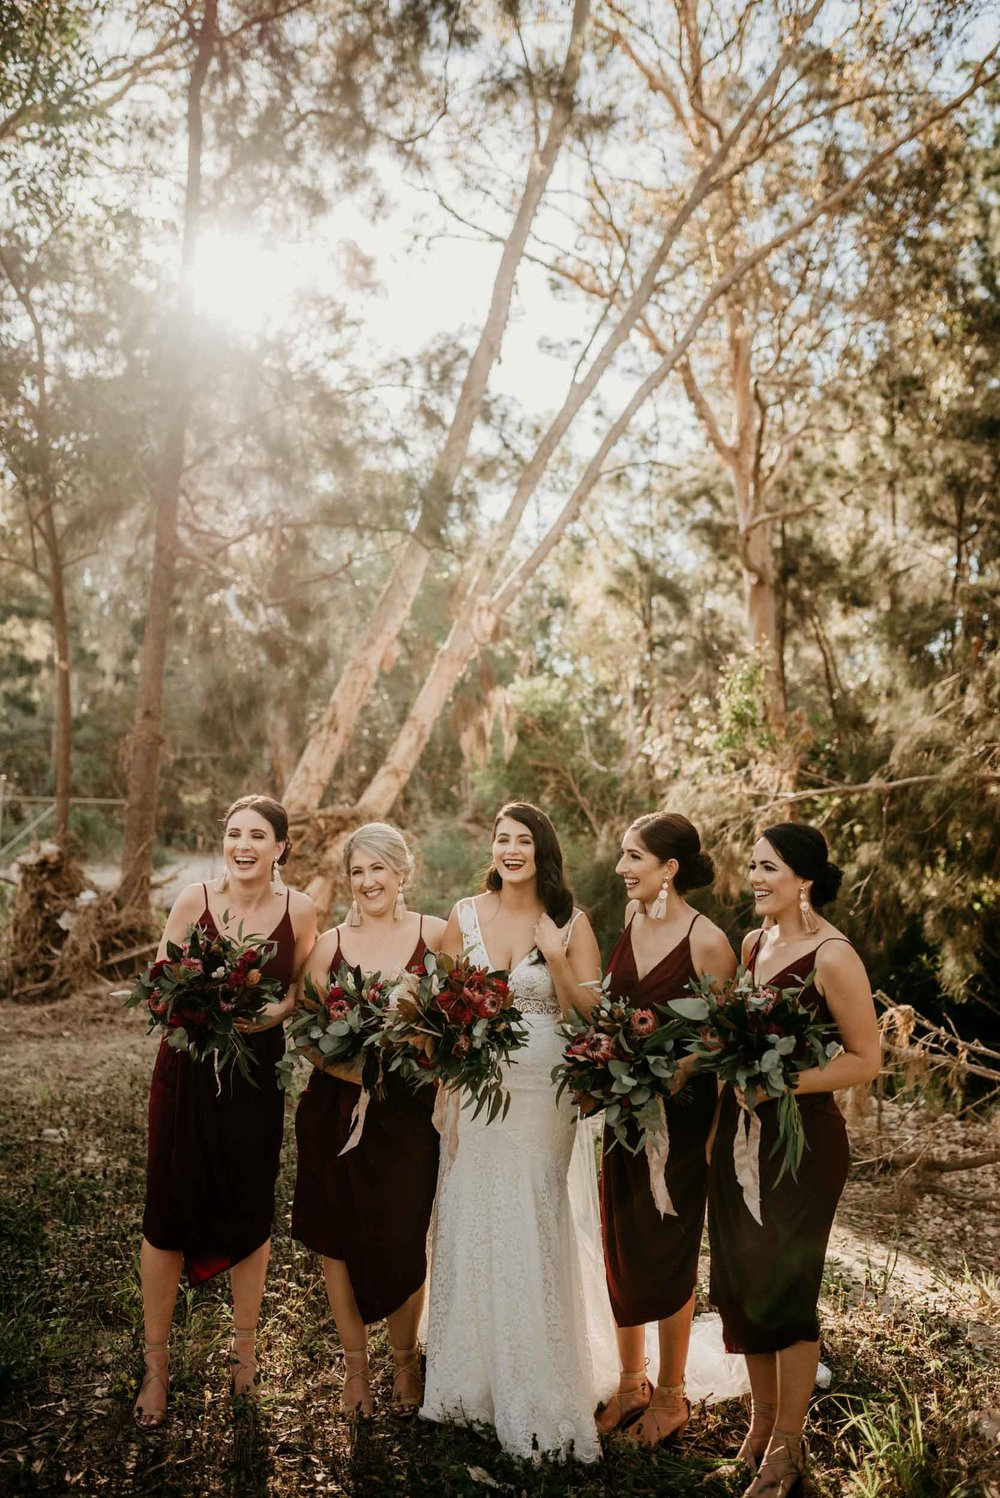 The Raw Photographer - Cairns Wedding Photographer - Atherton Tablelands - Mareeba farm Wedding - Irene Costa's Devine Bridal - Candid - Photo Package-29.jpg